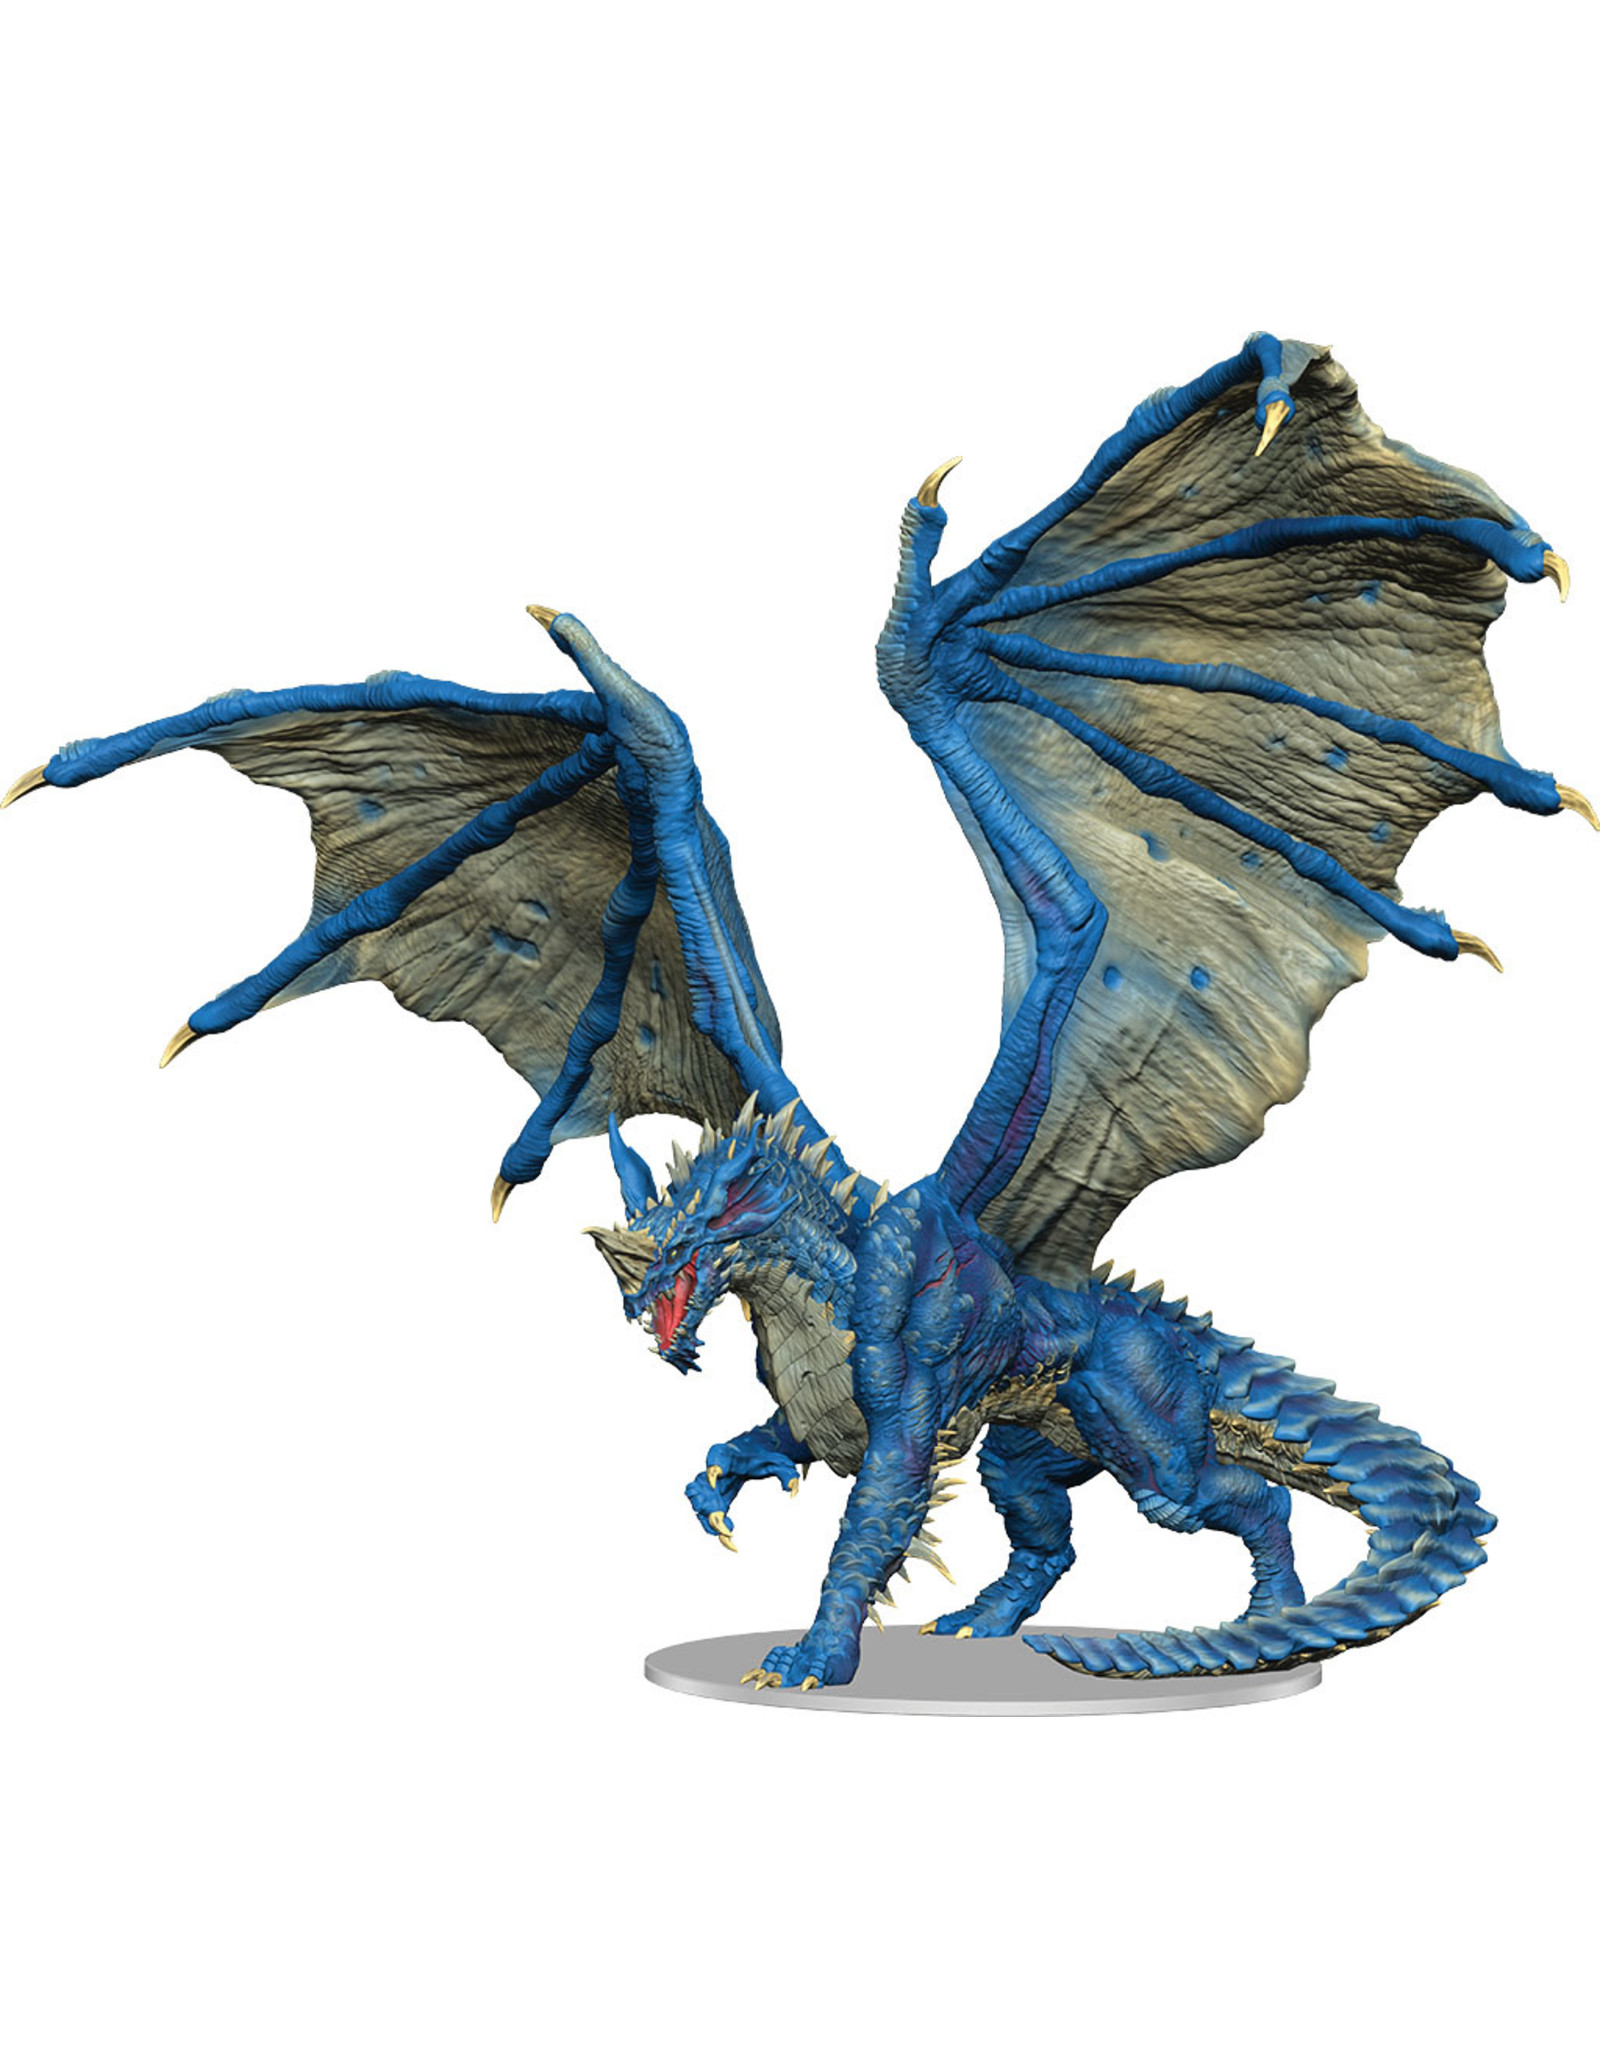 WizKids Dungeons & Dragons Fantasy Miniatures: Icons of the Realms - Adult Blue Dragon Premium Figure